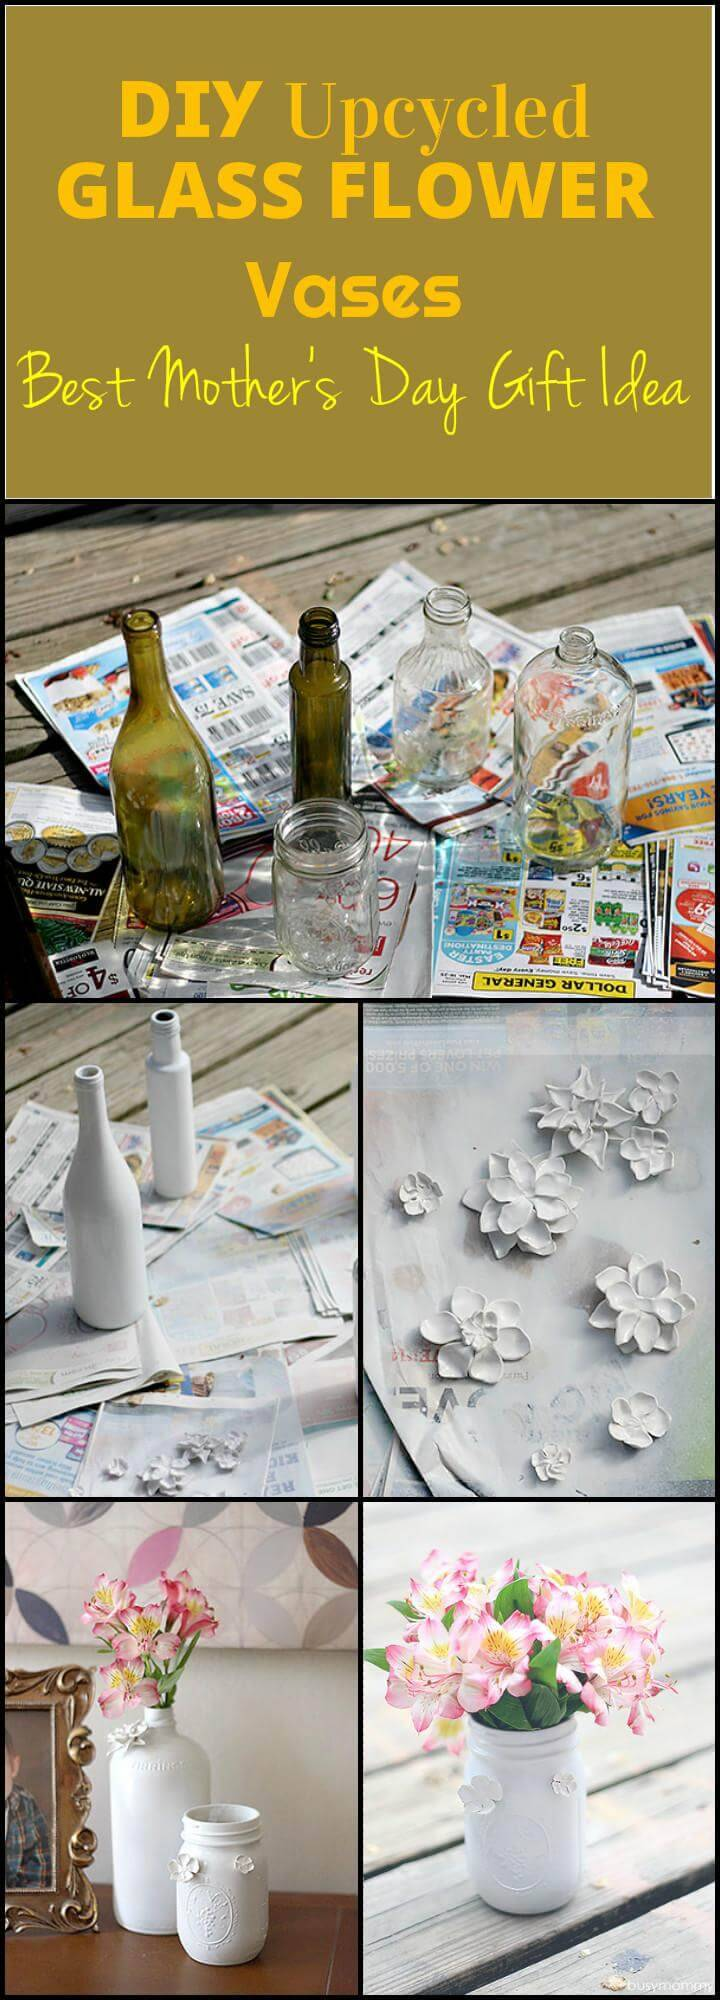 easy upcycled glass flower vases